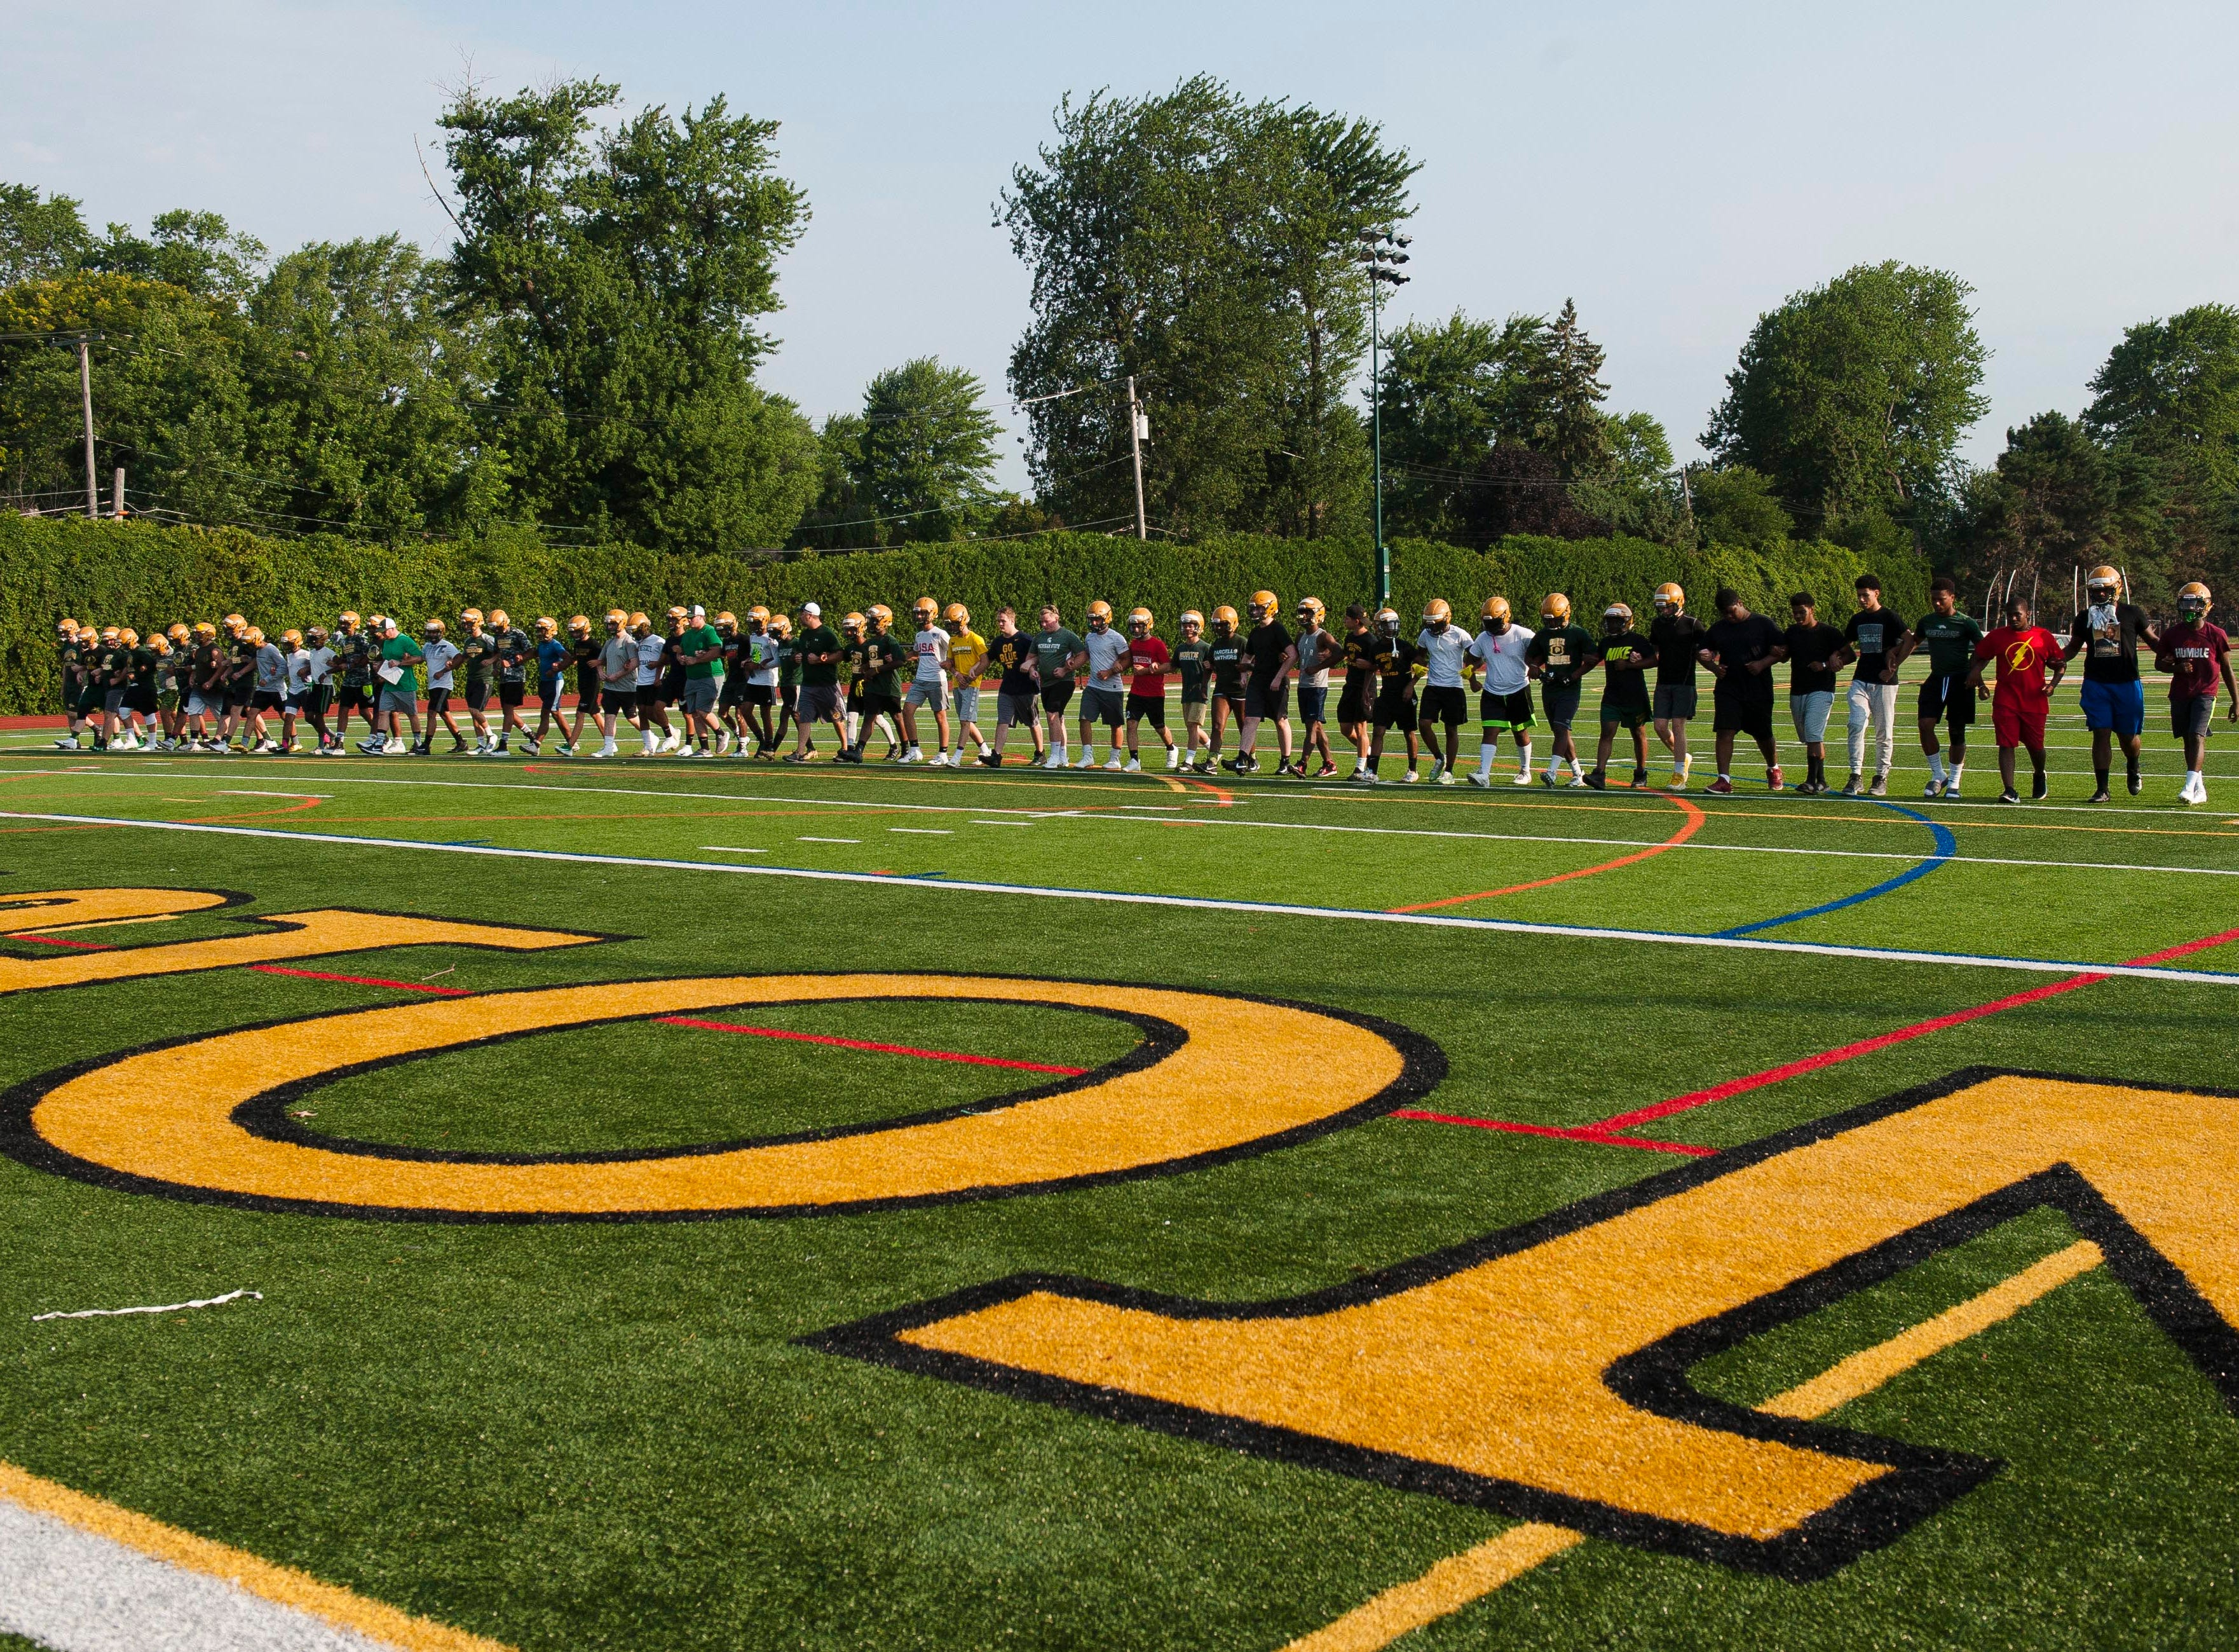 Led by new head coach Joe Drouin, the entire Grosse Pointe North football team walks the length of the field arm-in-arm in a unity exercise at the start of the team's first practice of the season.